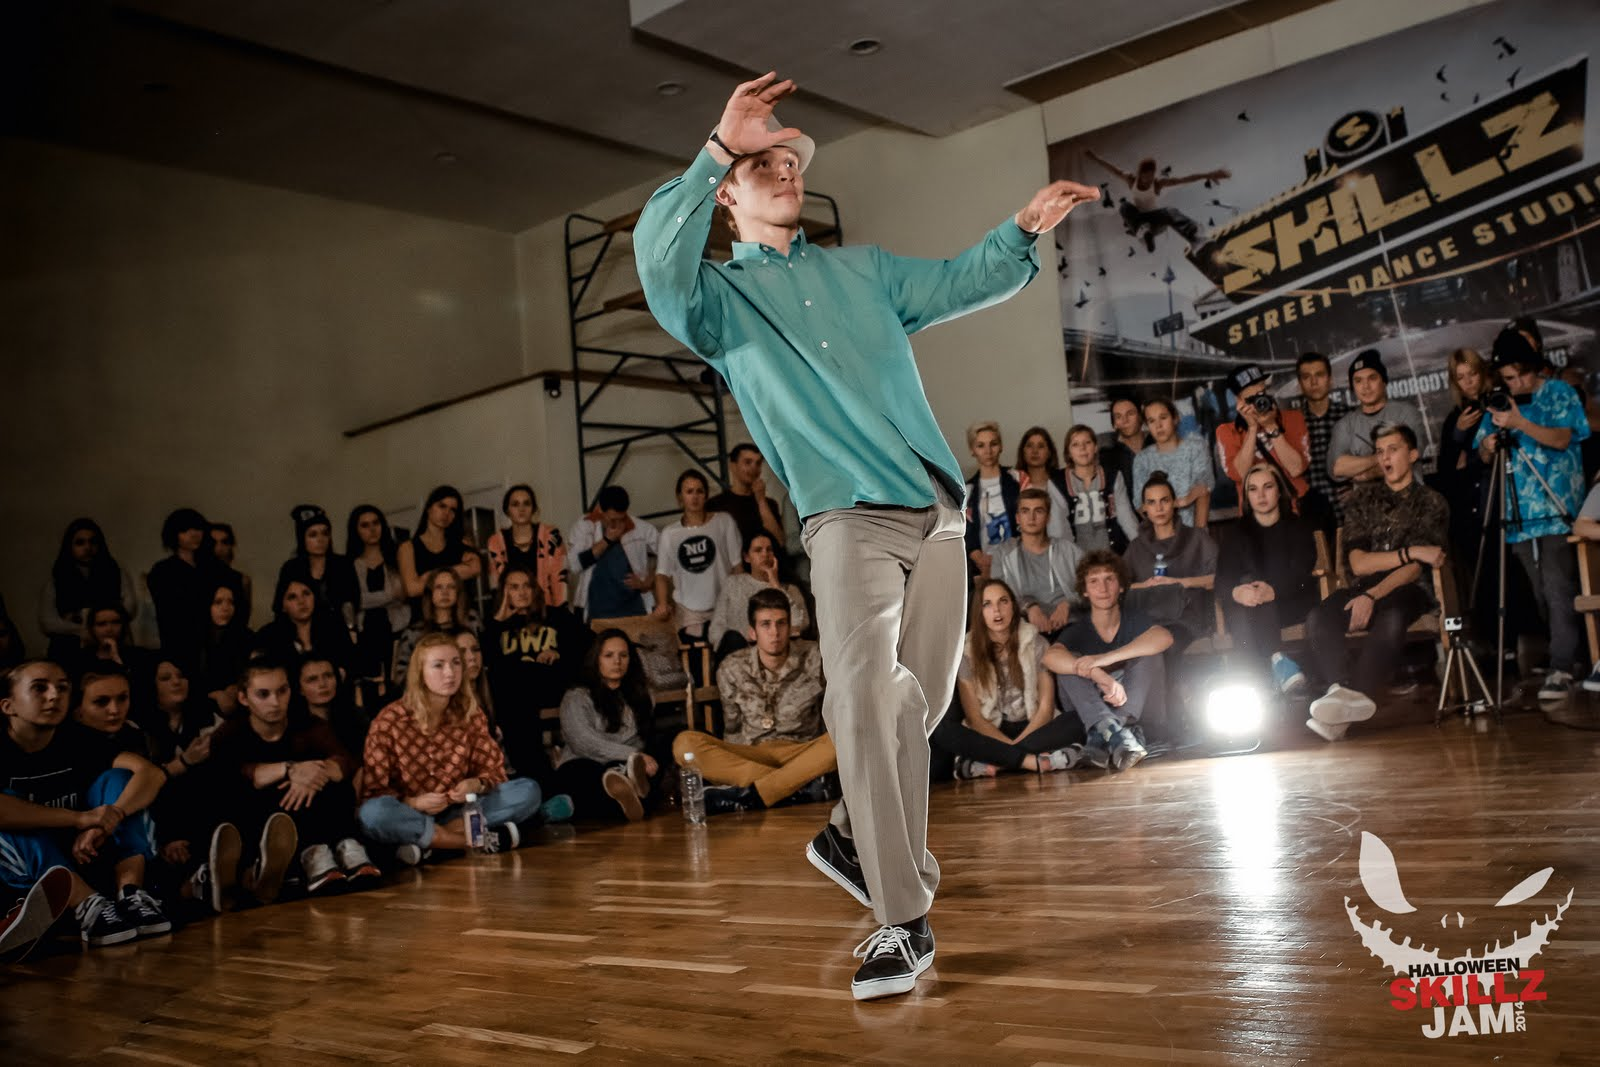 SKILLZ Halloween Jam Battles - a_MG_2013.jpg